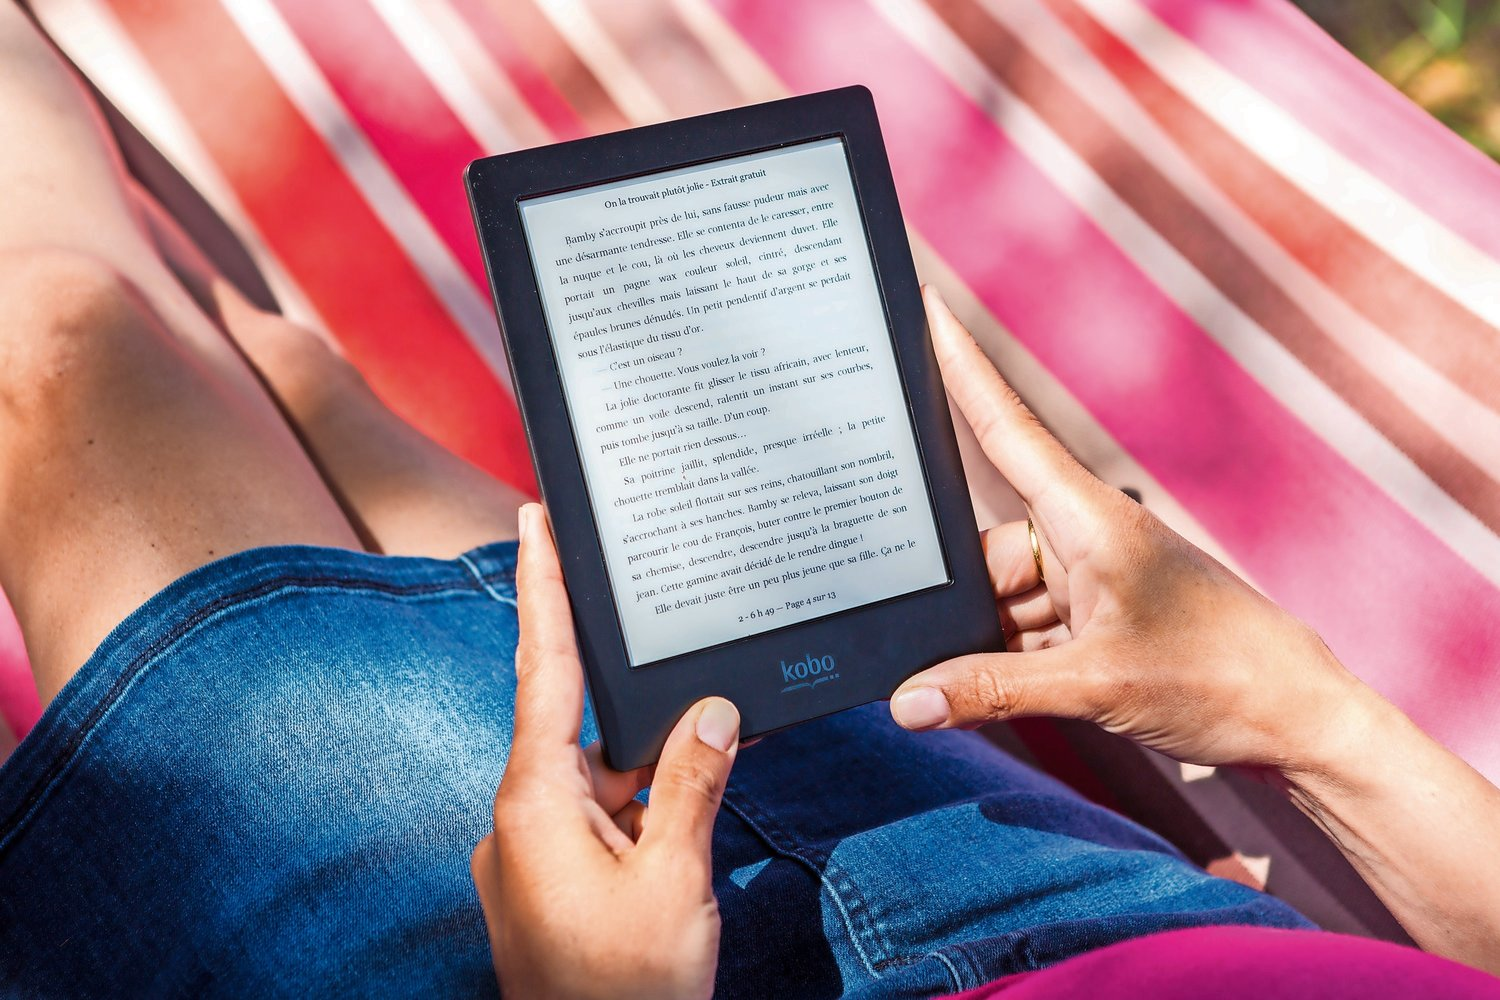 Macmillan Publishers limit e-book access at public libraries.